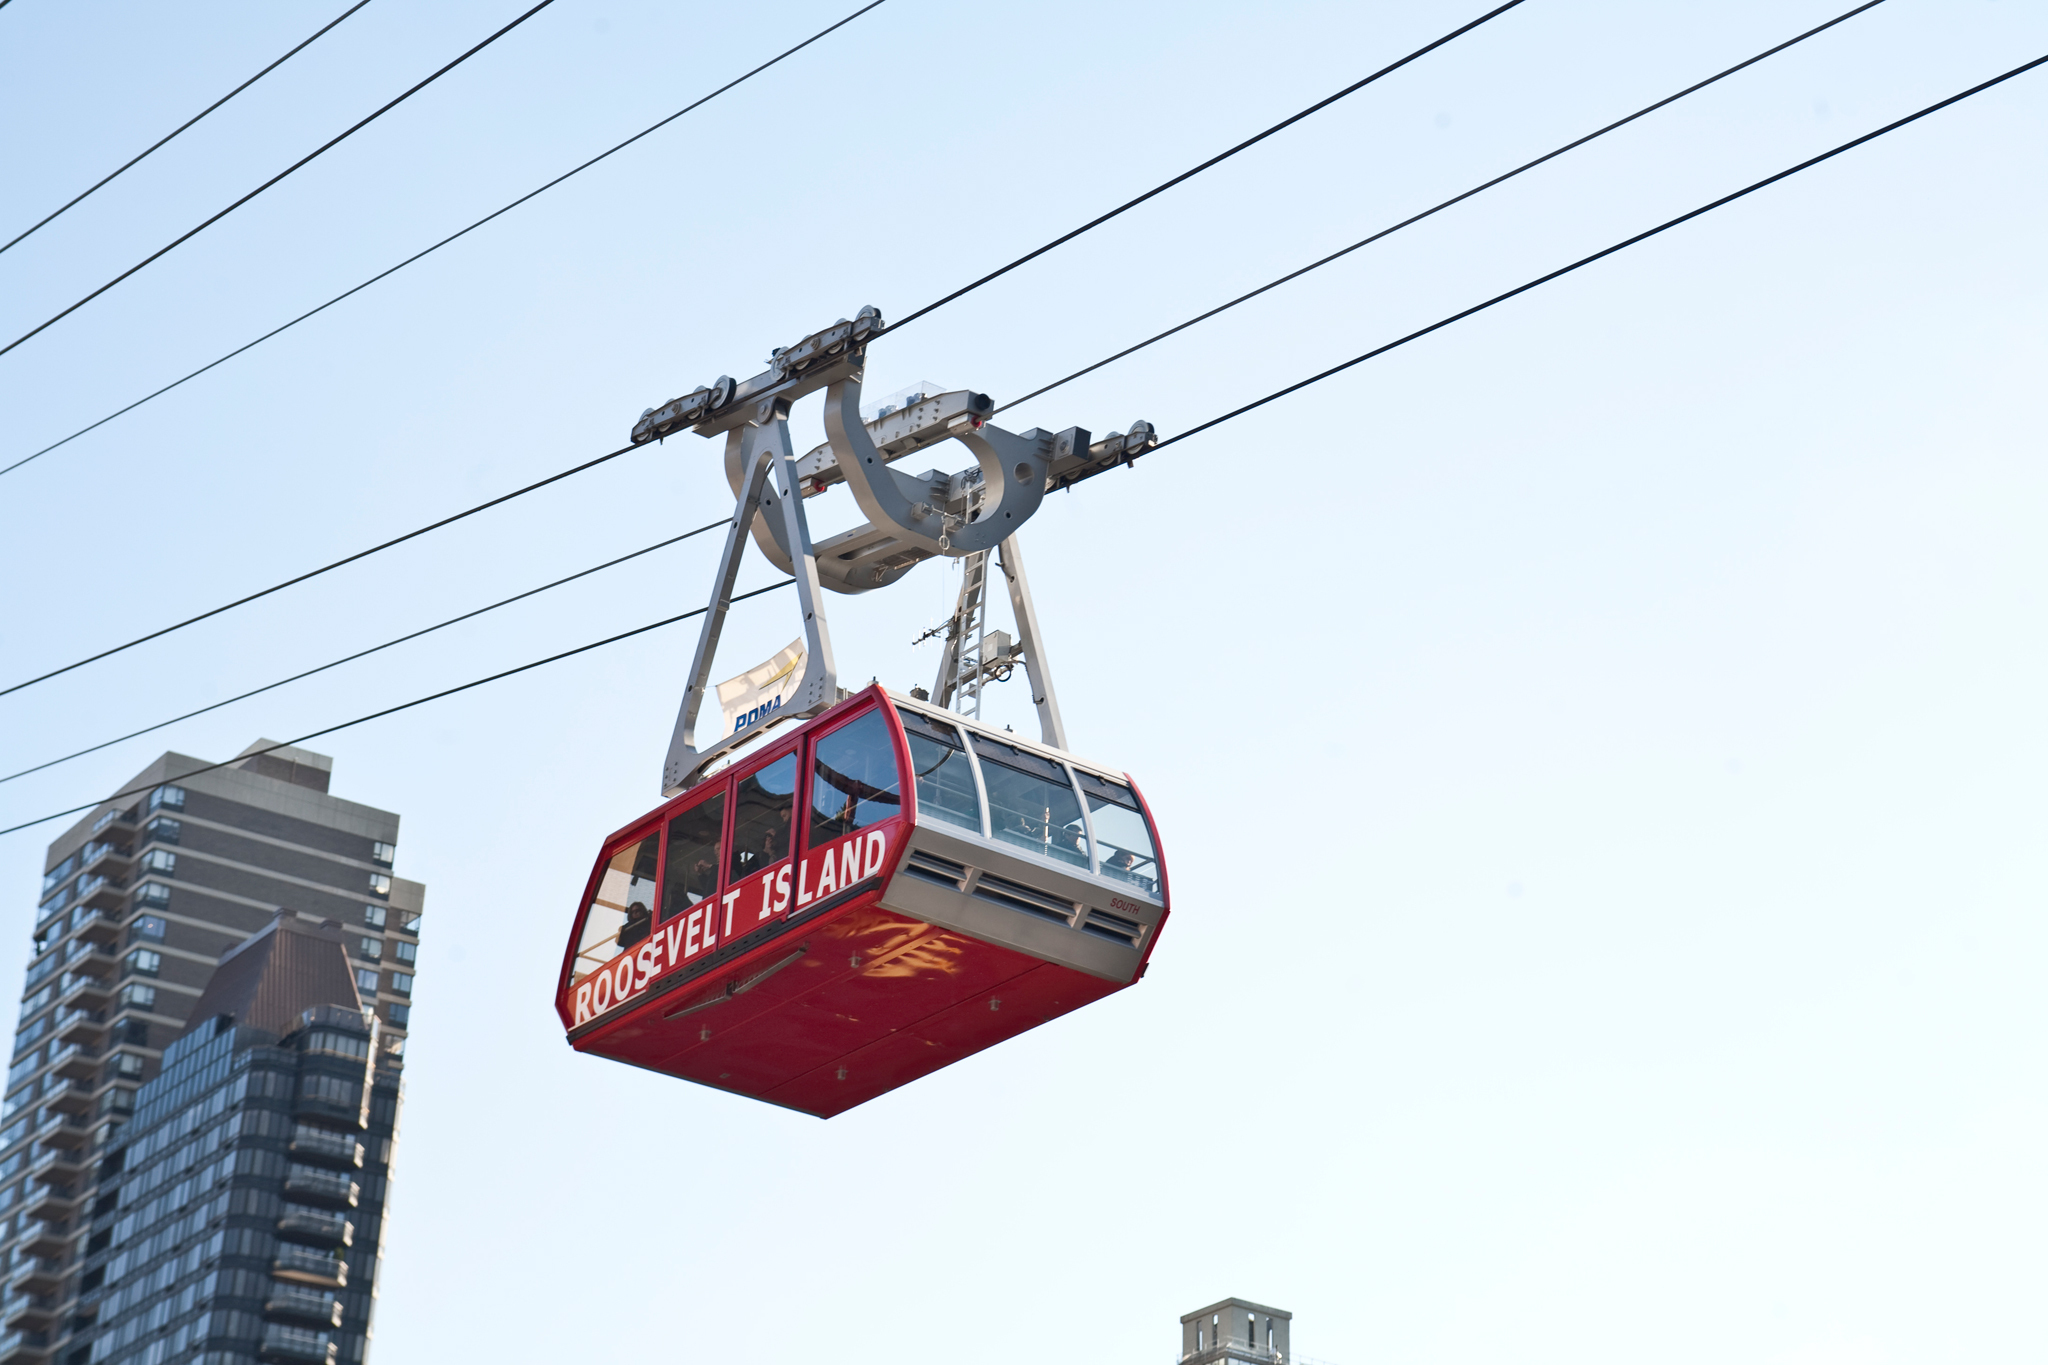 Take the aerial tram to Roosevelt Island